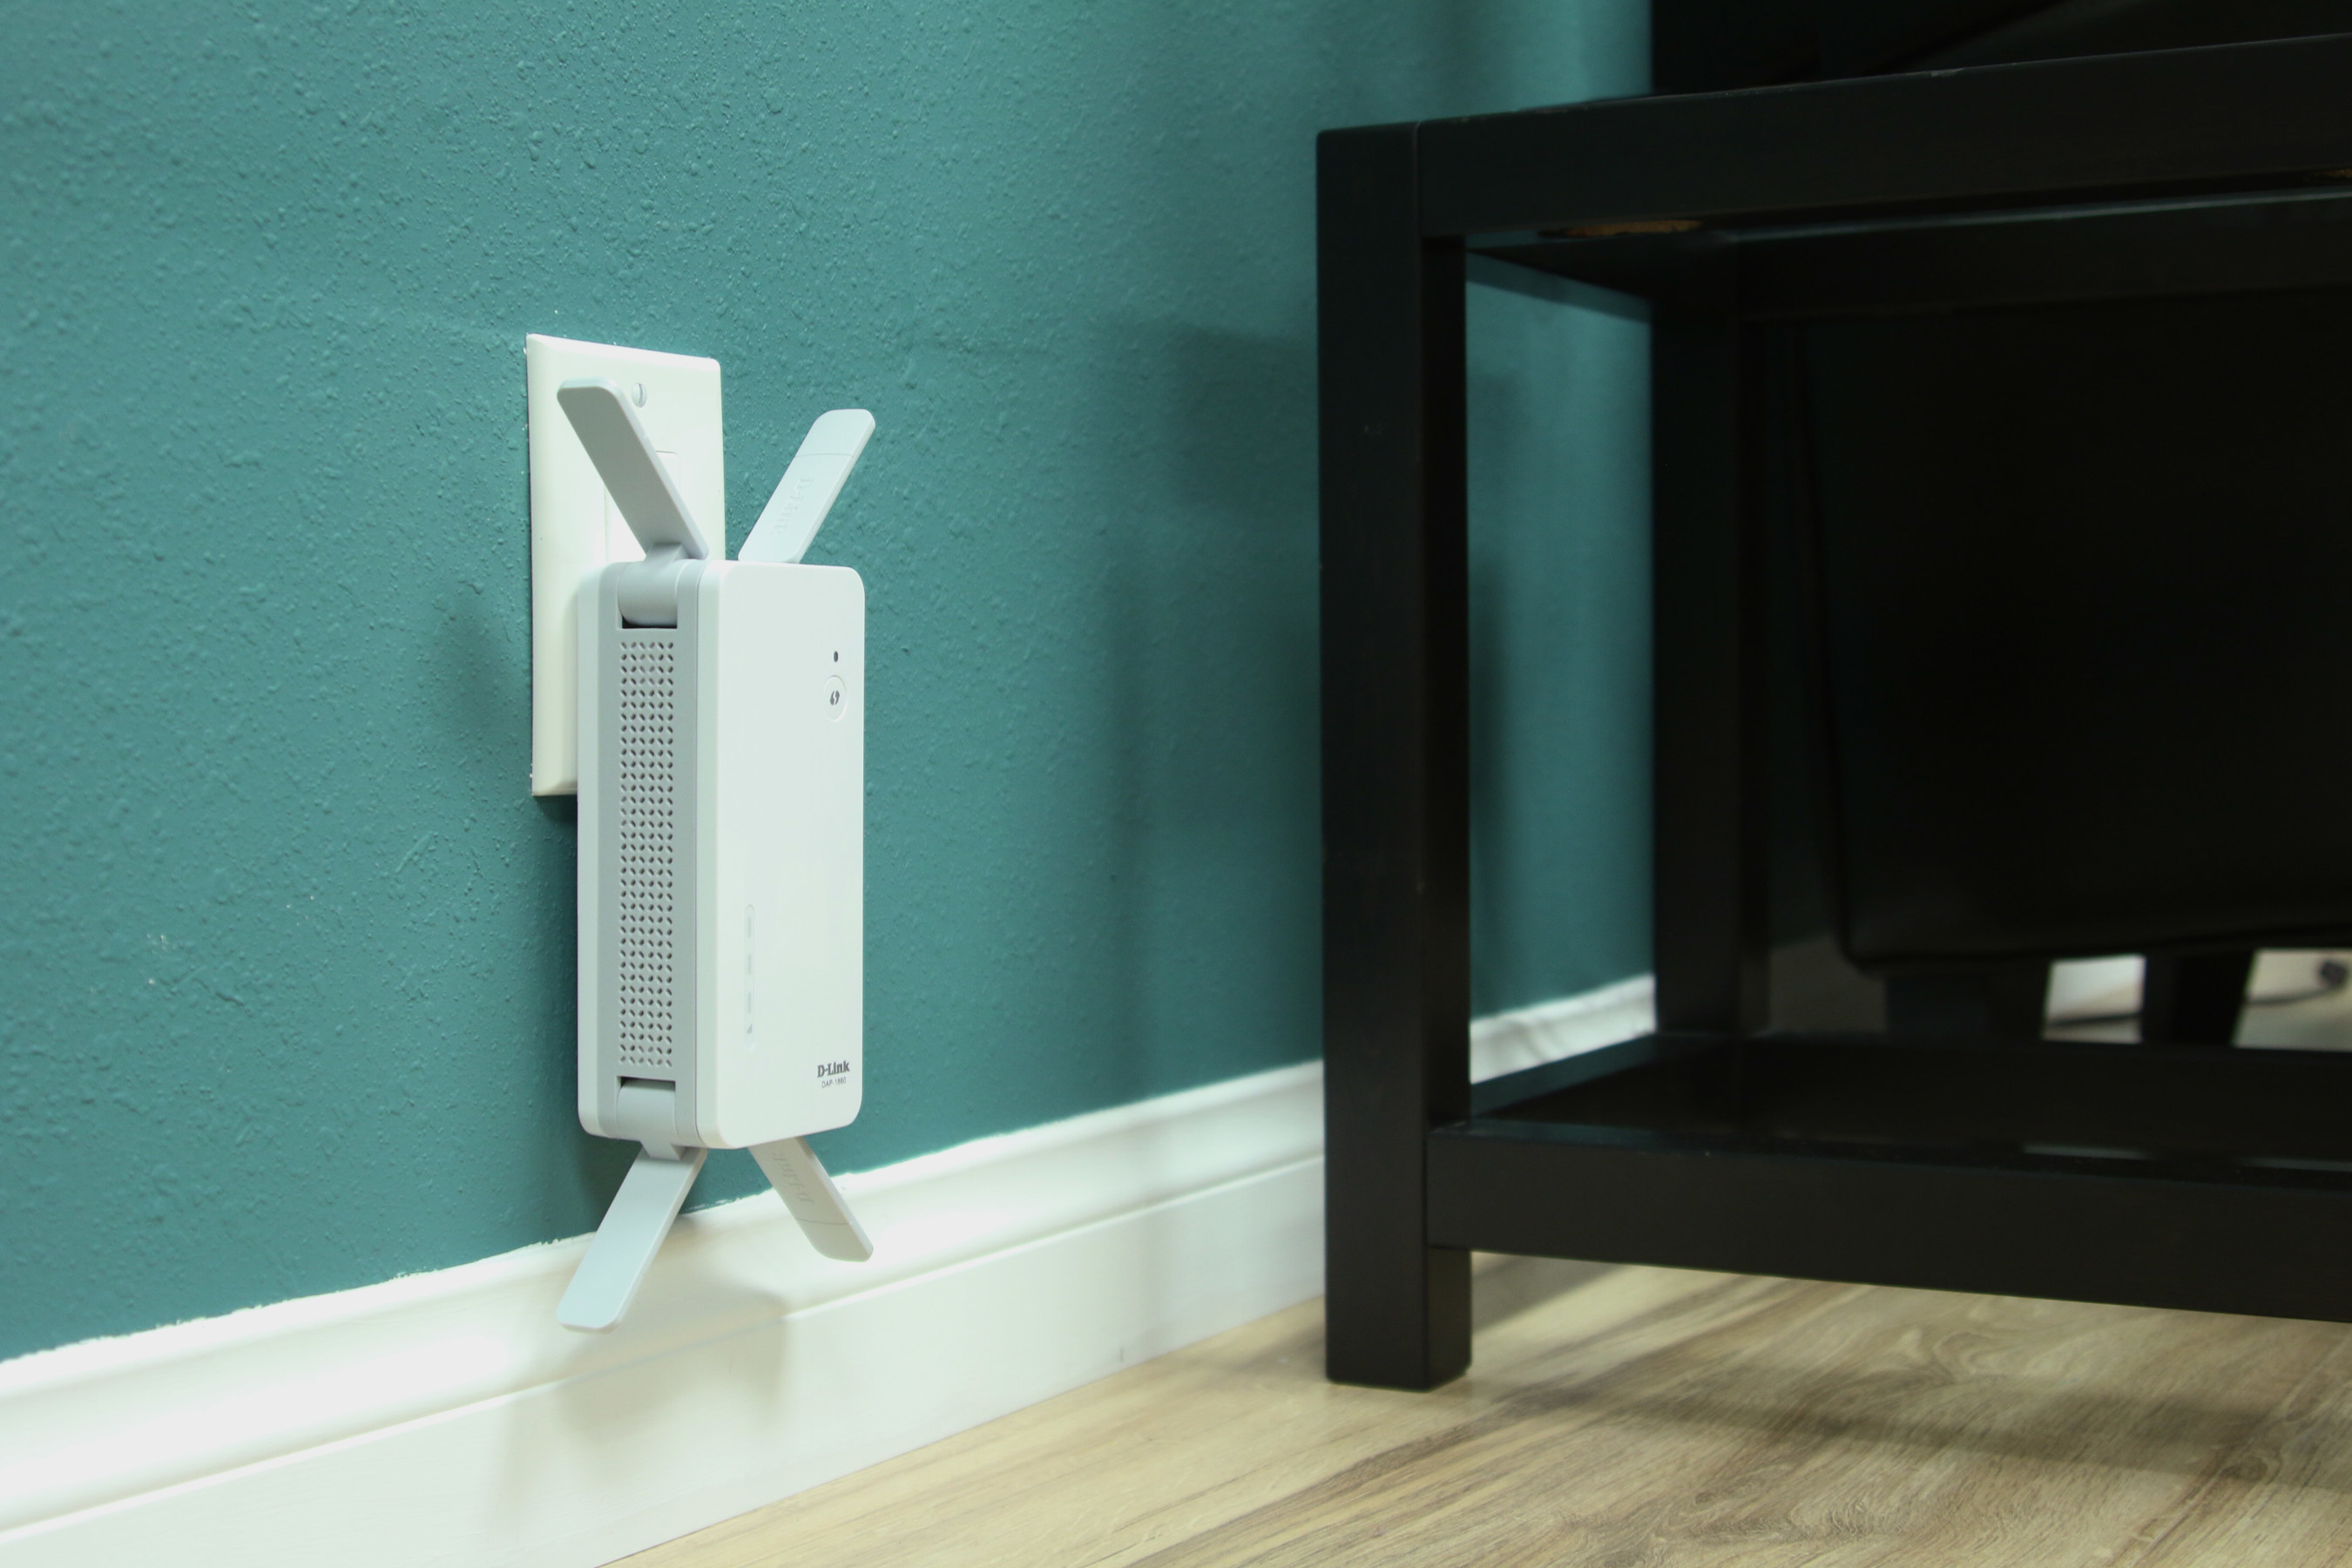 D-Link Now Shipping AC2600 Wi-Fi Range Extender with MU-MIMO Technology